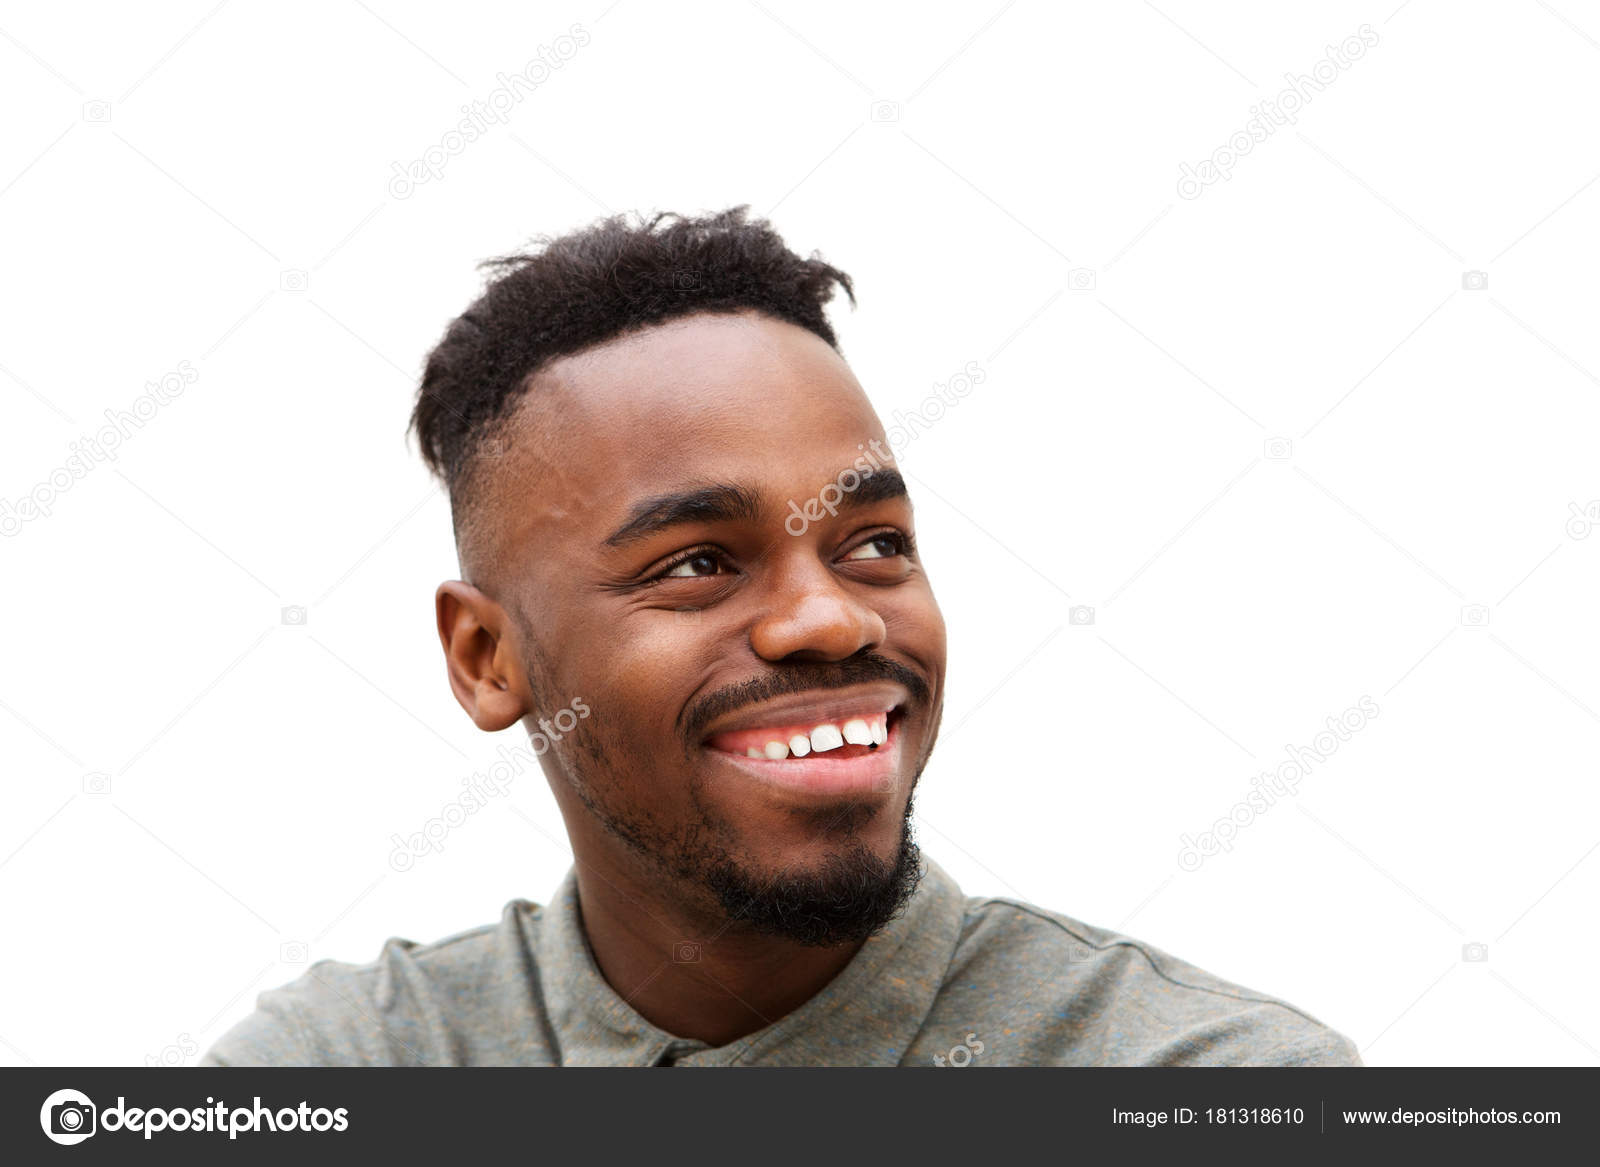 da8e22db81a Close up portrait of young black man smiling and looking away against white  background — Photo by mimagephotos